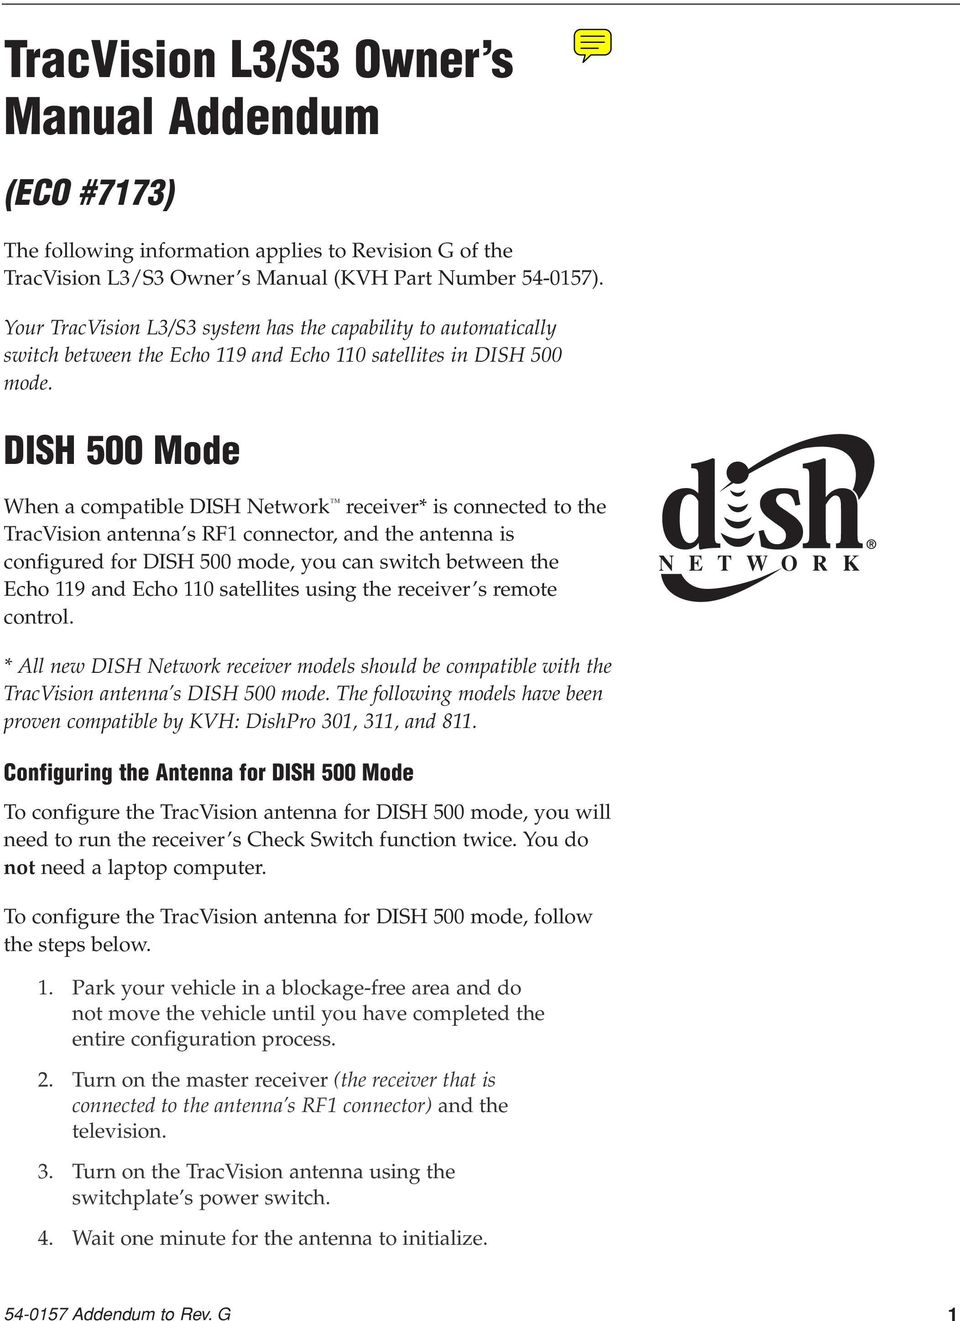 hight resolution of satellite television a guide to tracvision l3 s3 owner s manual dish network tv guide satellite tv wiring diagram dish network 301